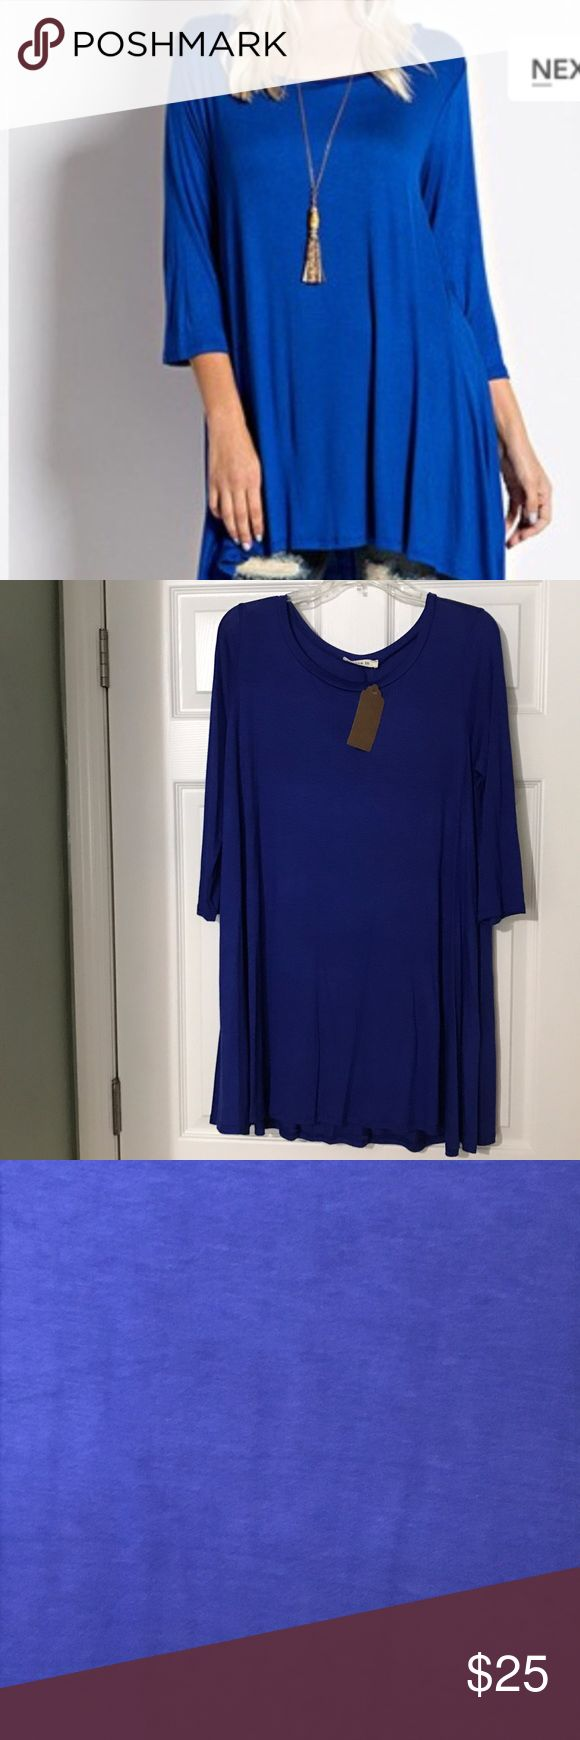 Royal blue 3/4 sleeve tunic Great A-line blue tunic for leggings or skinny jeans. Fabric is 5% spandex and 95% Rayon. Bought from boutique and was just a little too big for me. Size L is a little baggy. I'm a 10, think the told would be better for a size 12. Tops Tunics